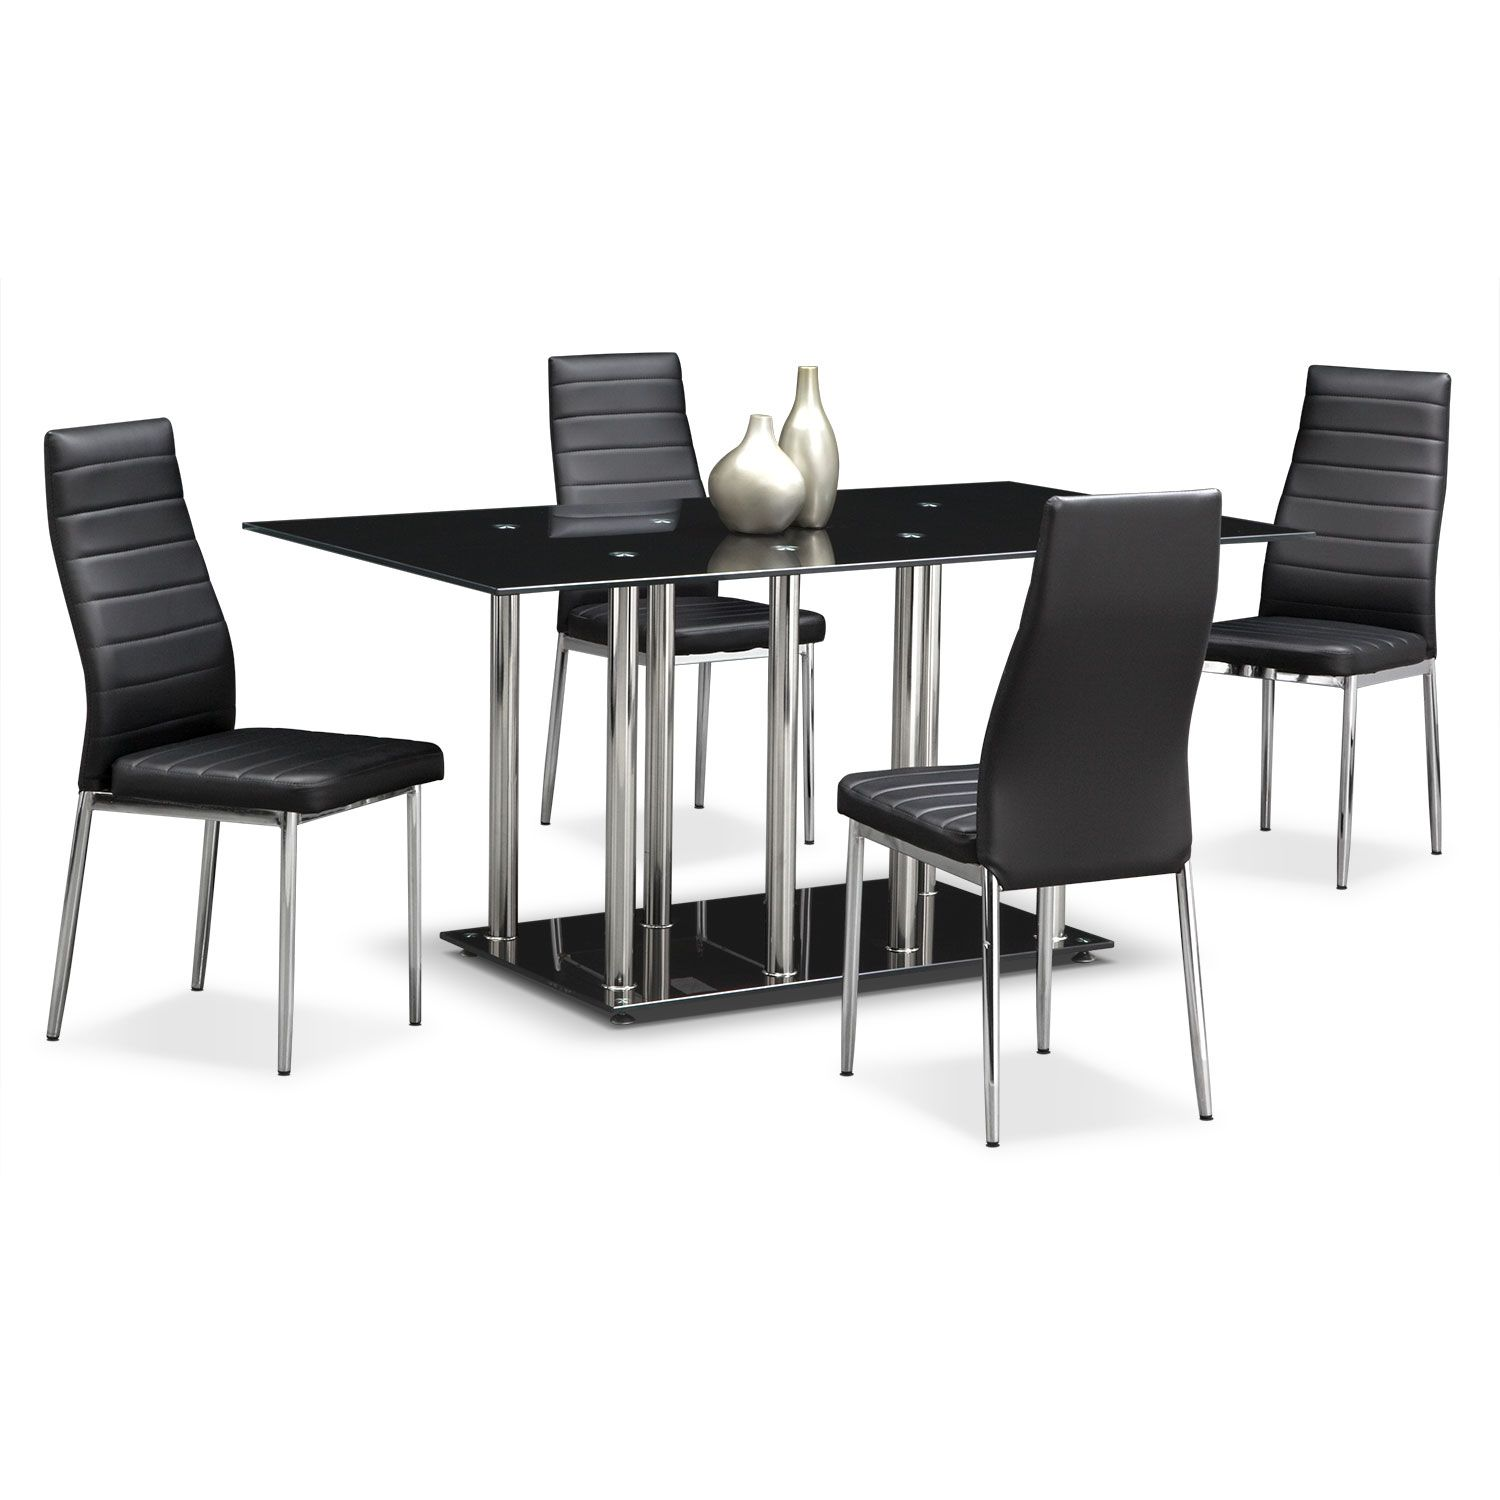 Great The Modern Stratus Dining Collection Is Stylishly Engineered To Bring An  Ultra